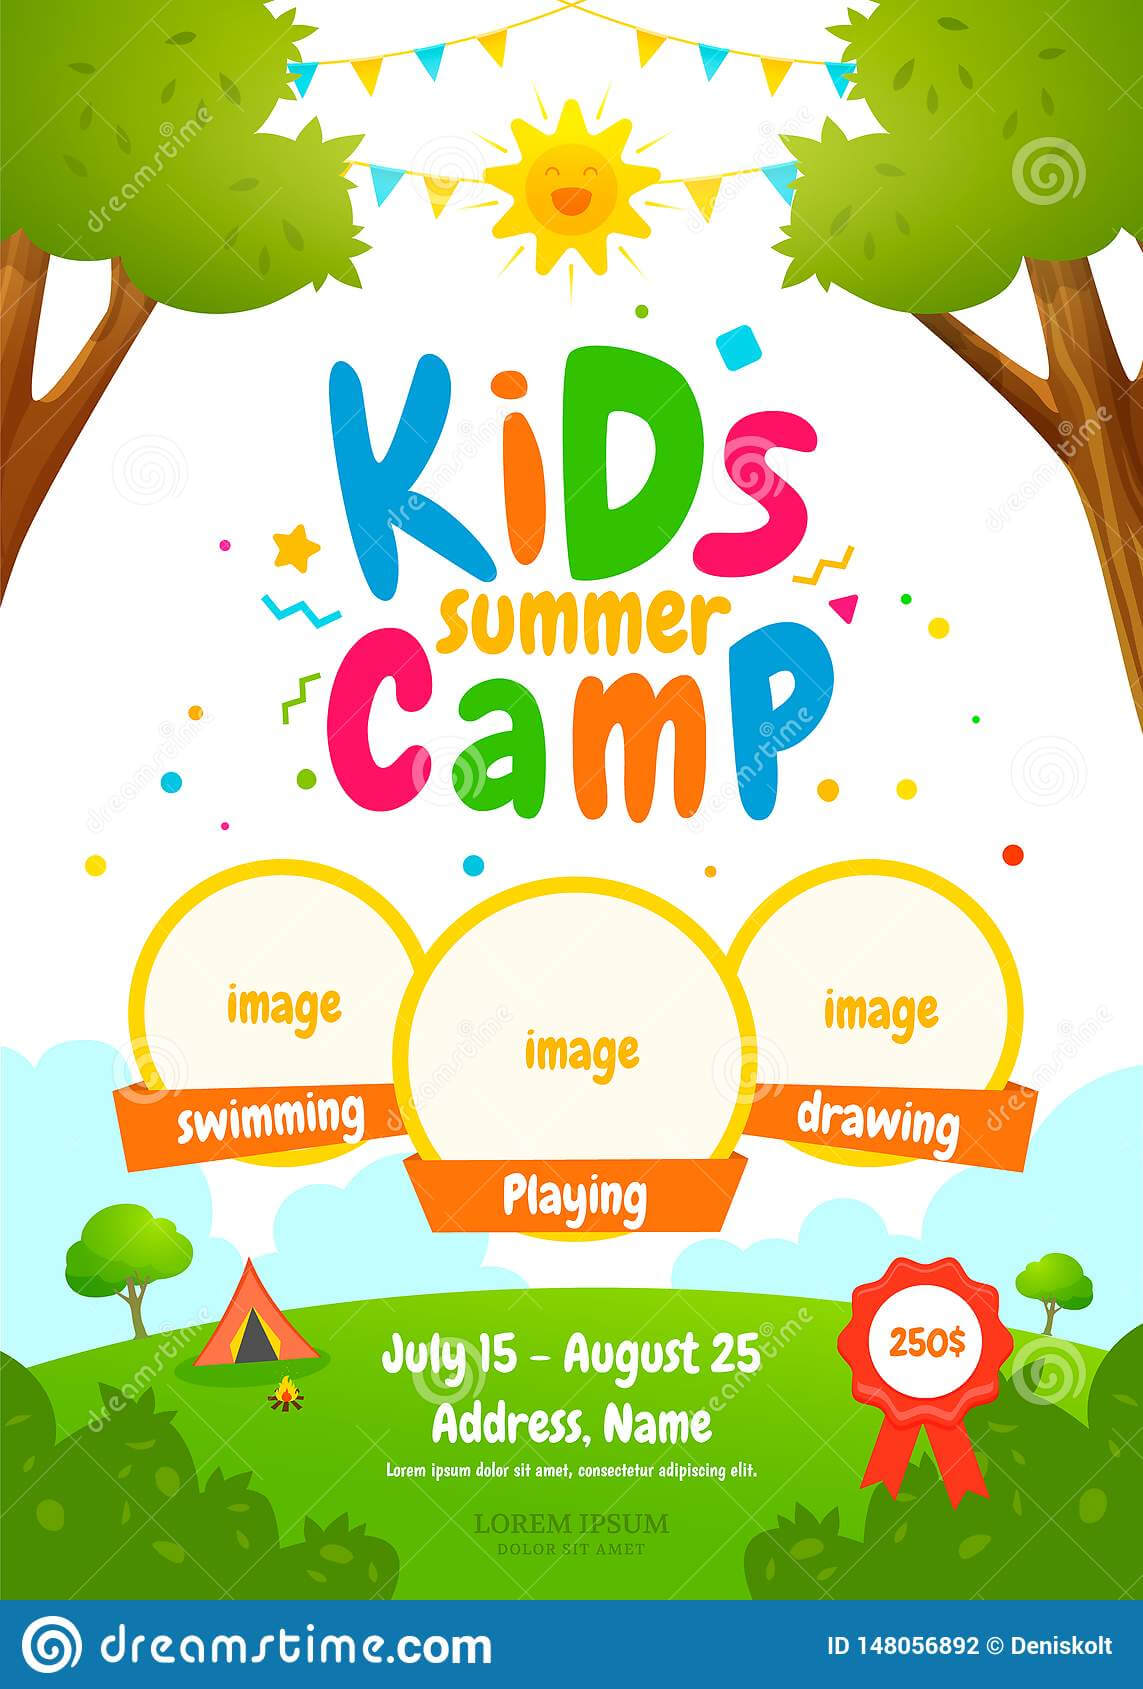 Kids Summer Camp Poster Stock Vector. Illustration Of Family In Summer Camp Brochure Template Free Download